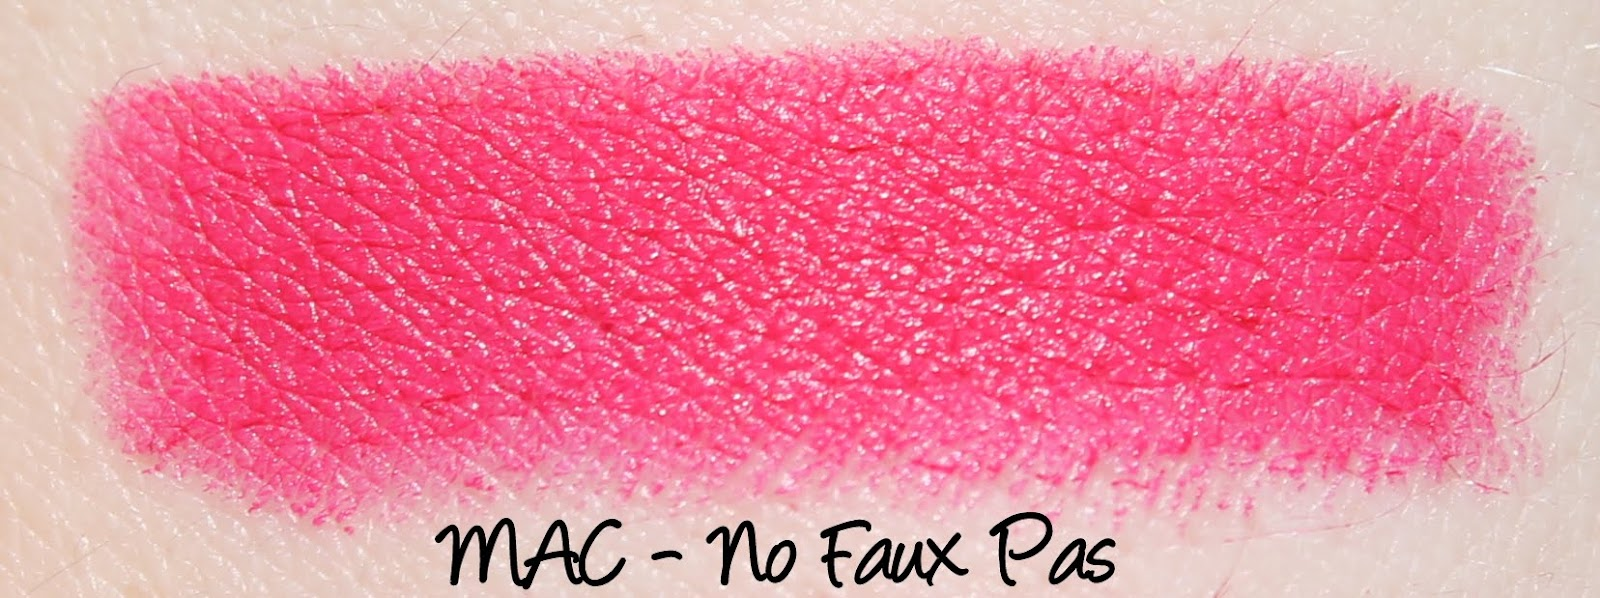 MAC Heirloom Mix Lipsticks - No Faux Pas Swatches & Review